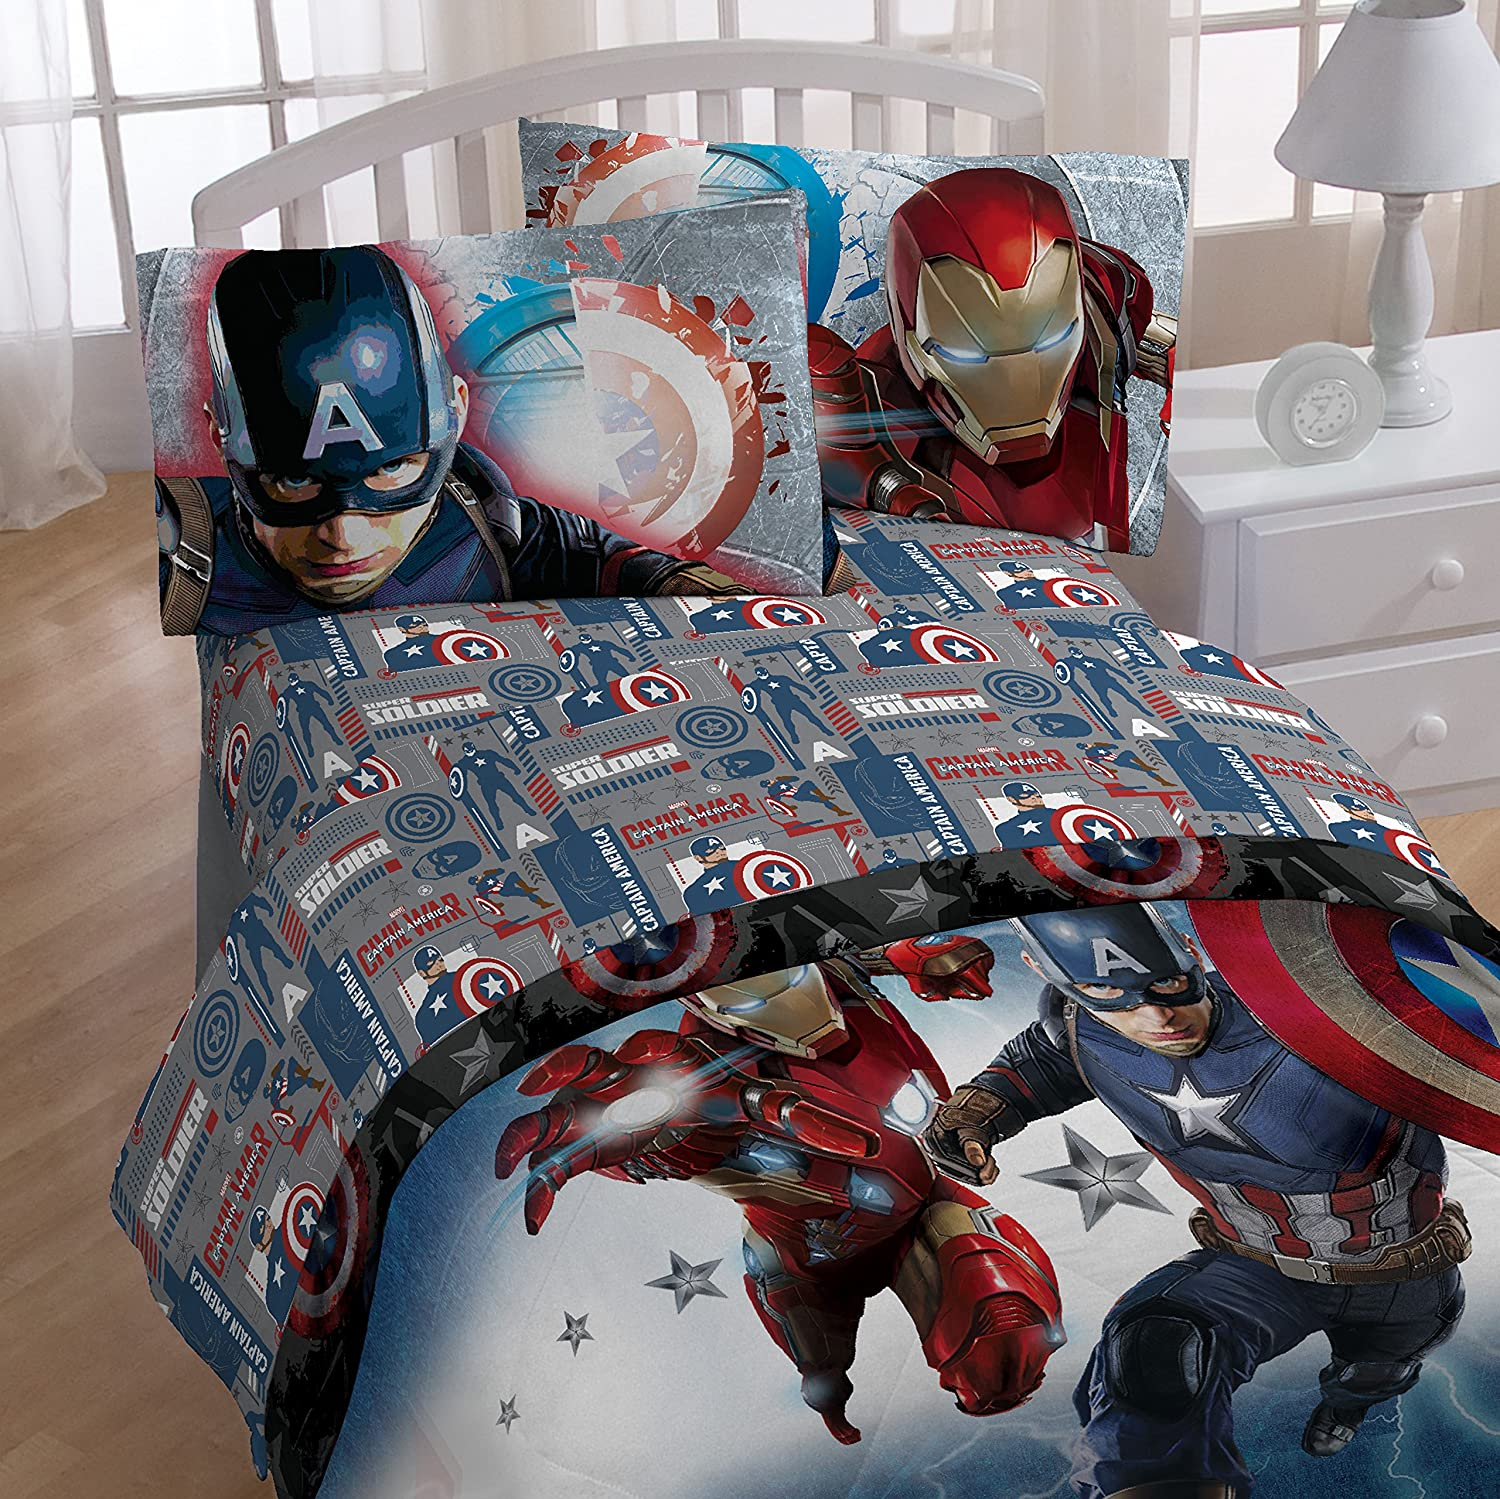 Spiderman and friends bedding - Marvel Captain America Civil War Twin 3 Piece Sheet Set